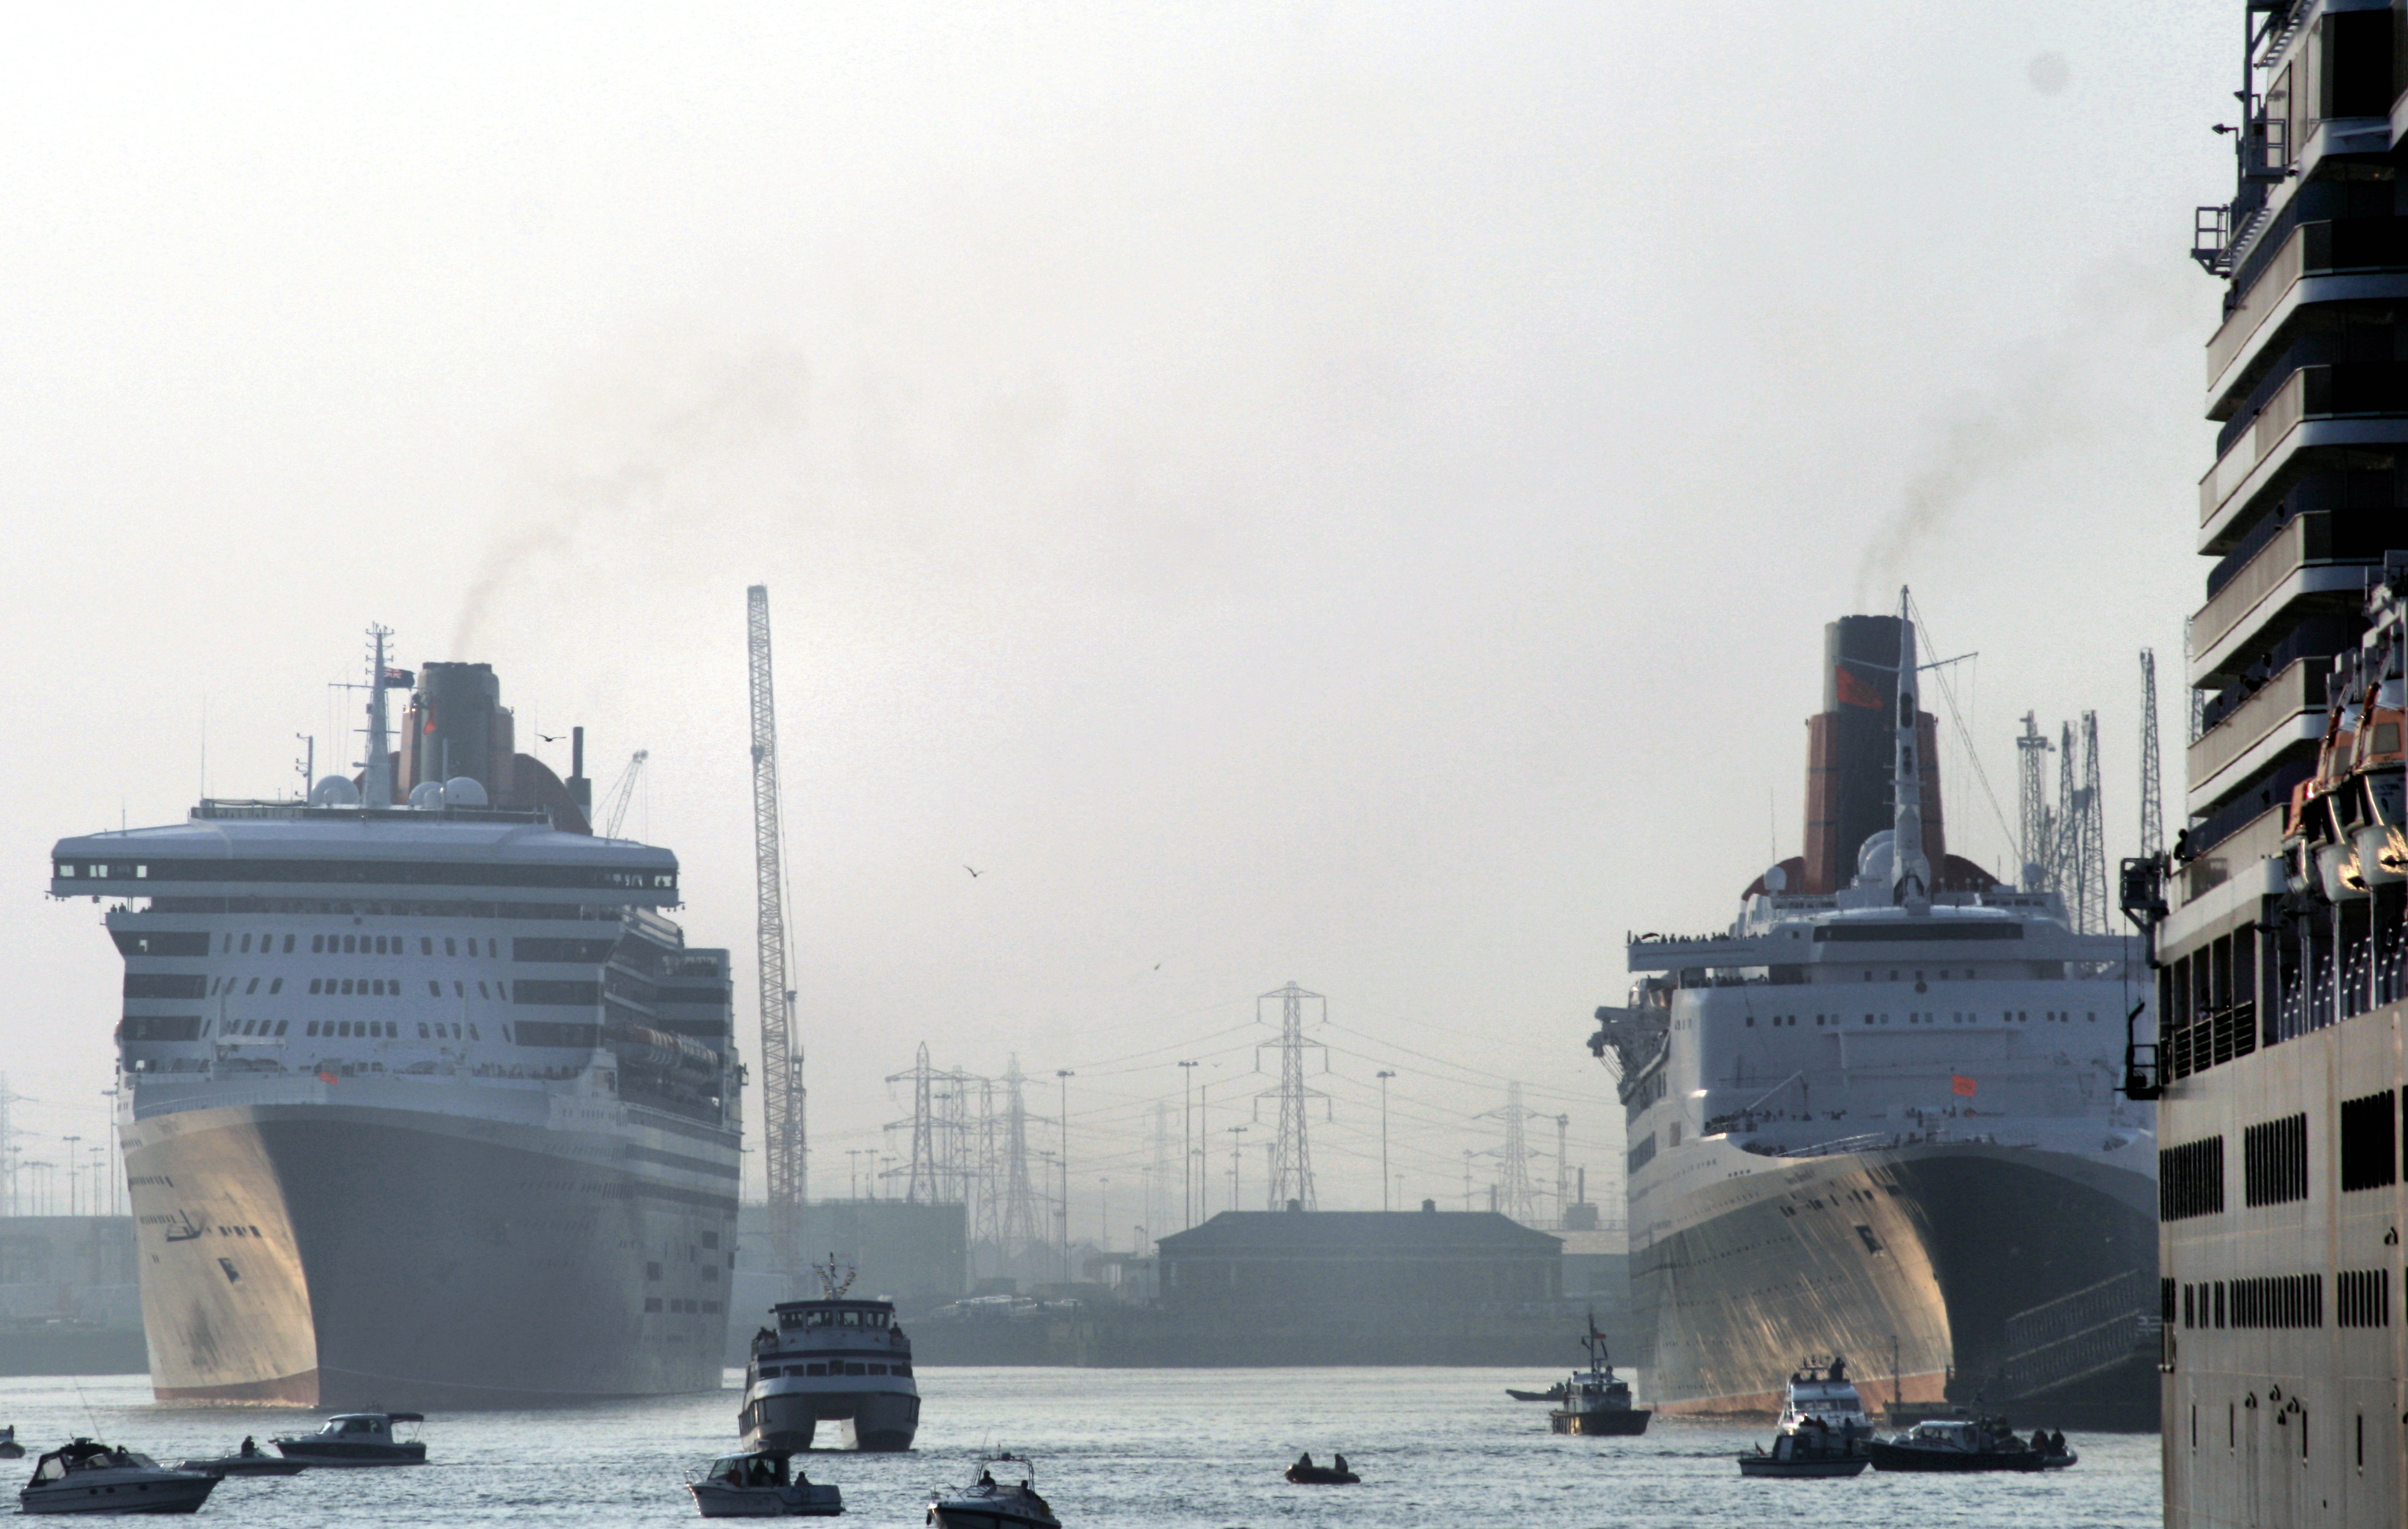 RMS Queen Mary 2 next to QE2 with stern of MS Queen Victoria on far right.